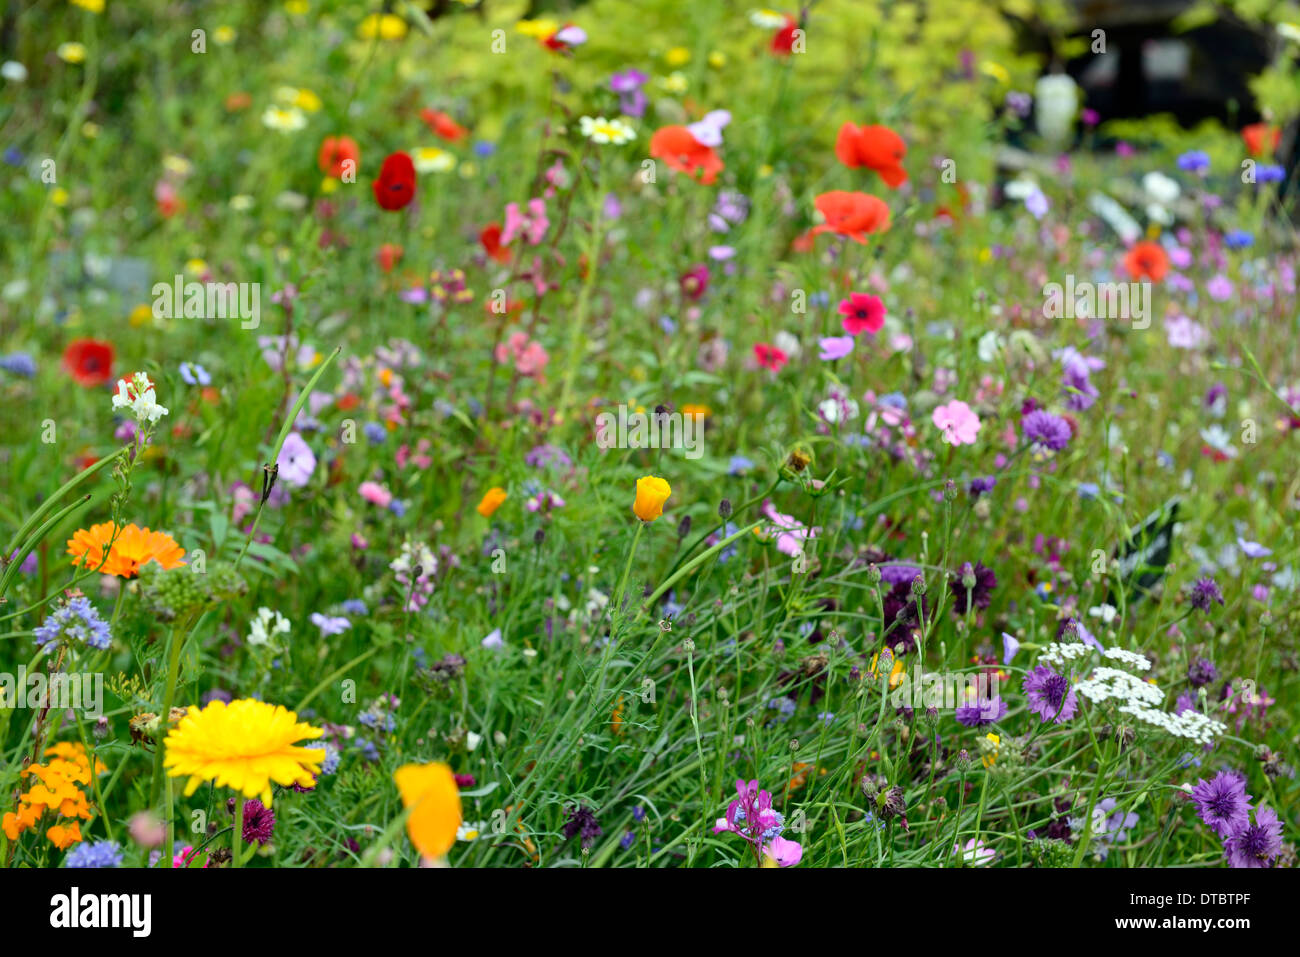 Captivating Stock Photo   Annual Wildflower Meadow Summer Wildflowers Meadows Wild  Gardens Flowers Naturalised Planting Combinations Mixed Annuals